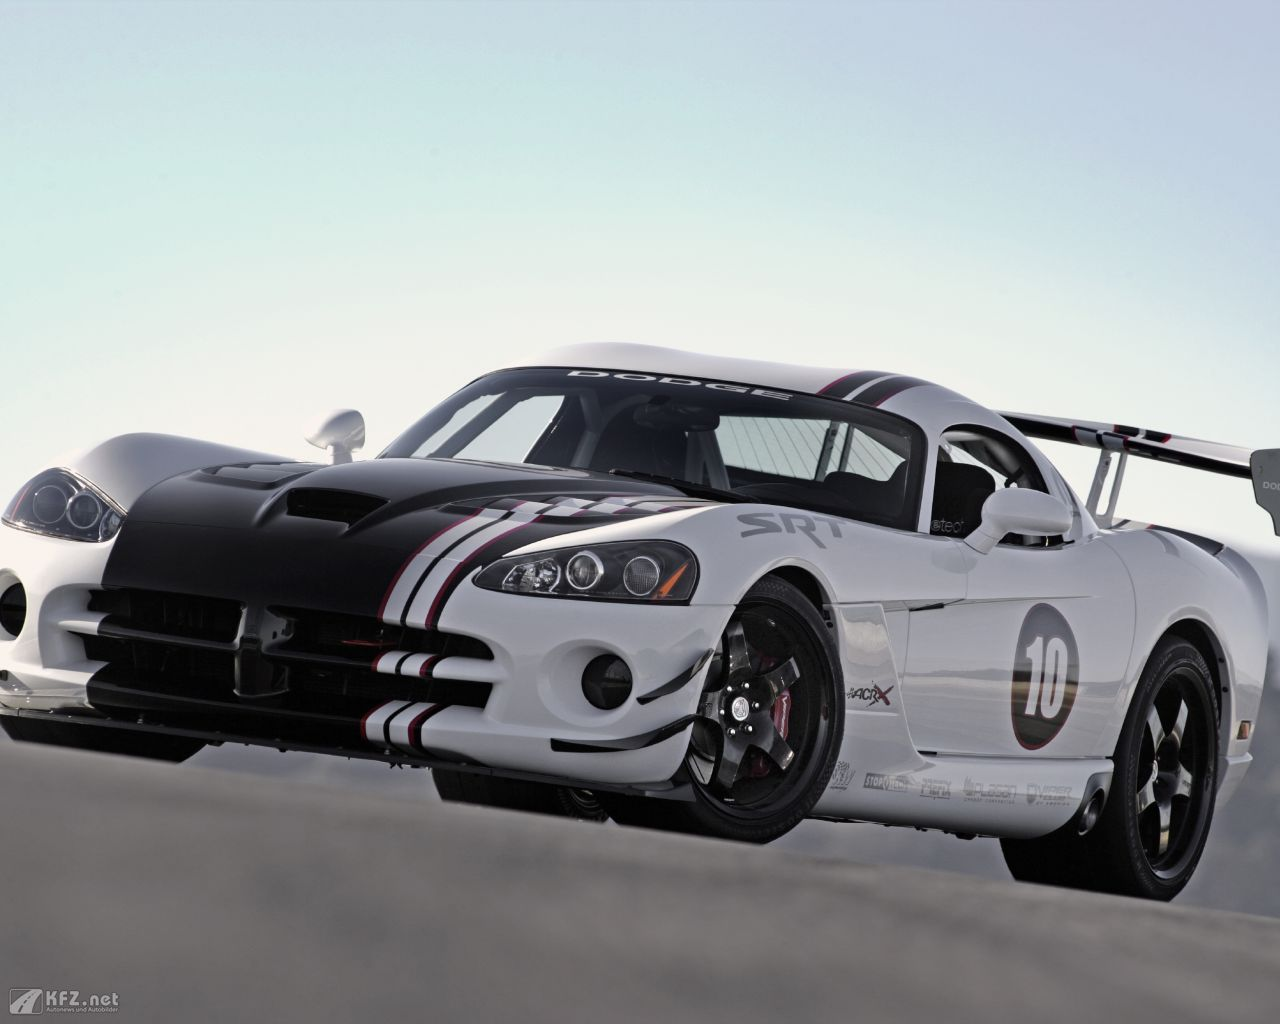 chrysler-dodge-viper-1280x1024-14